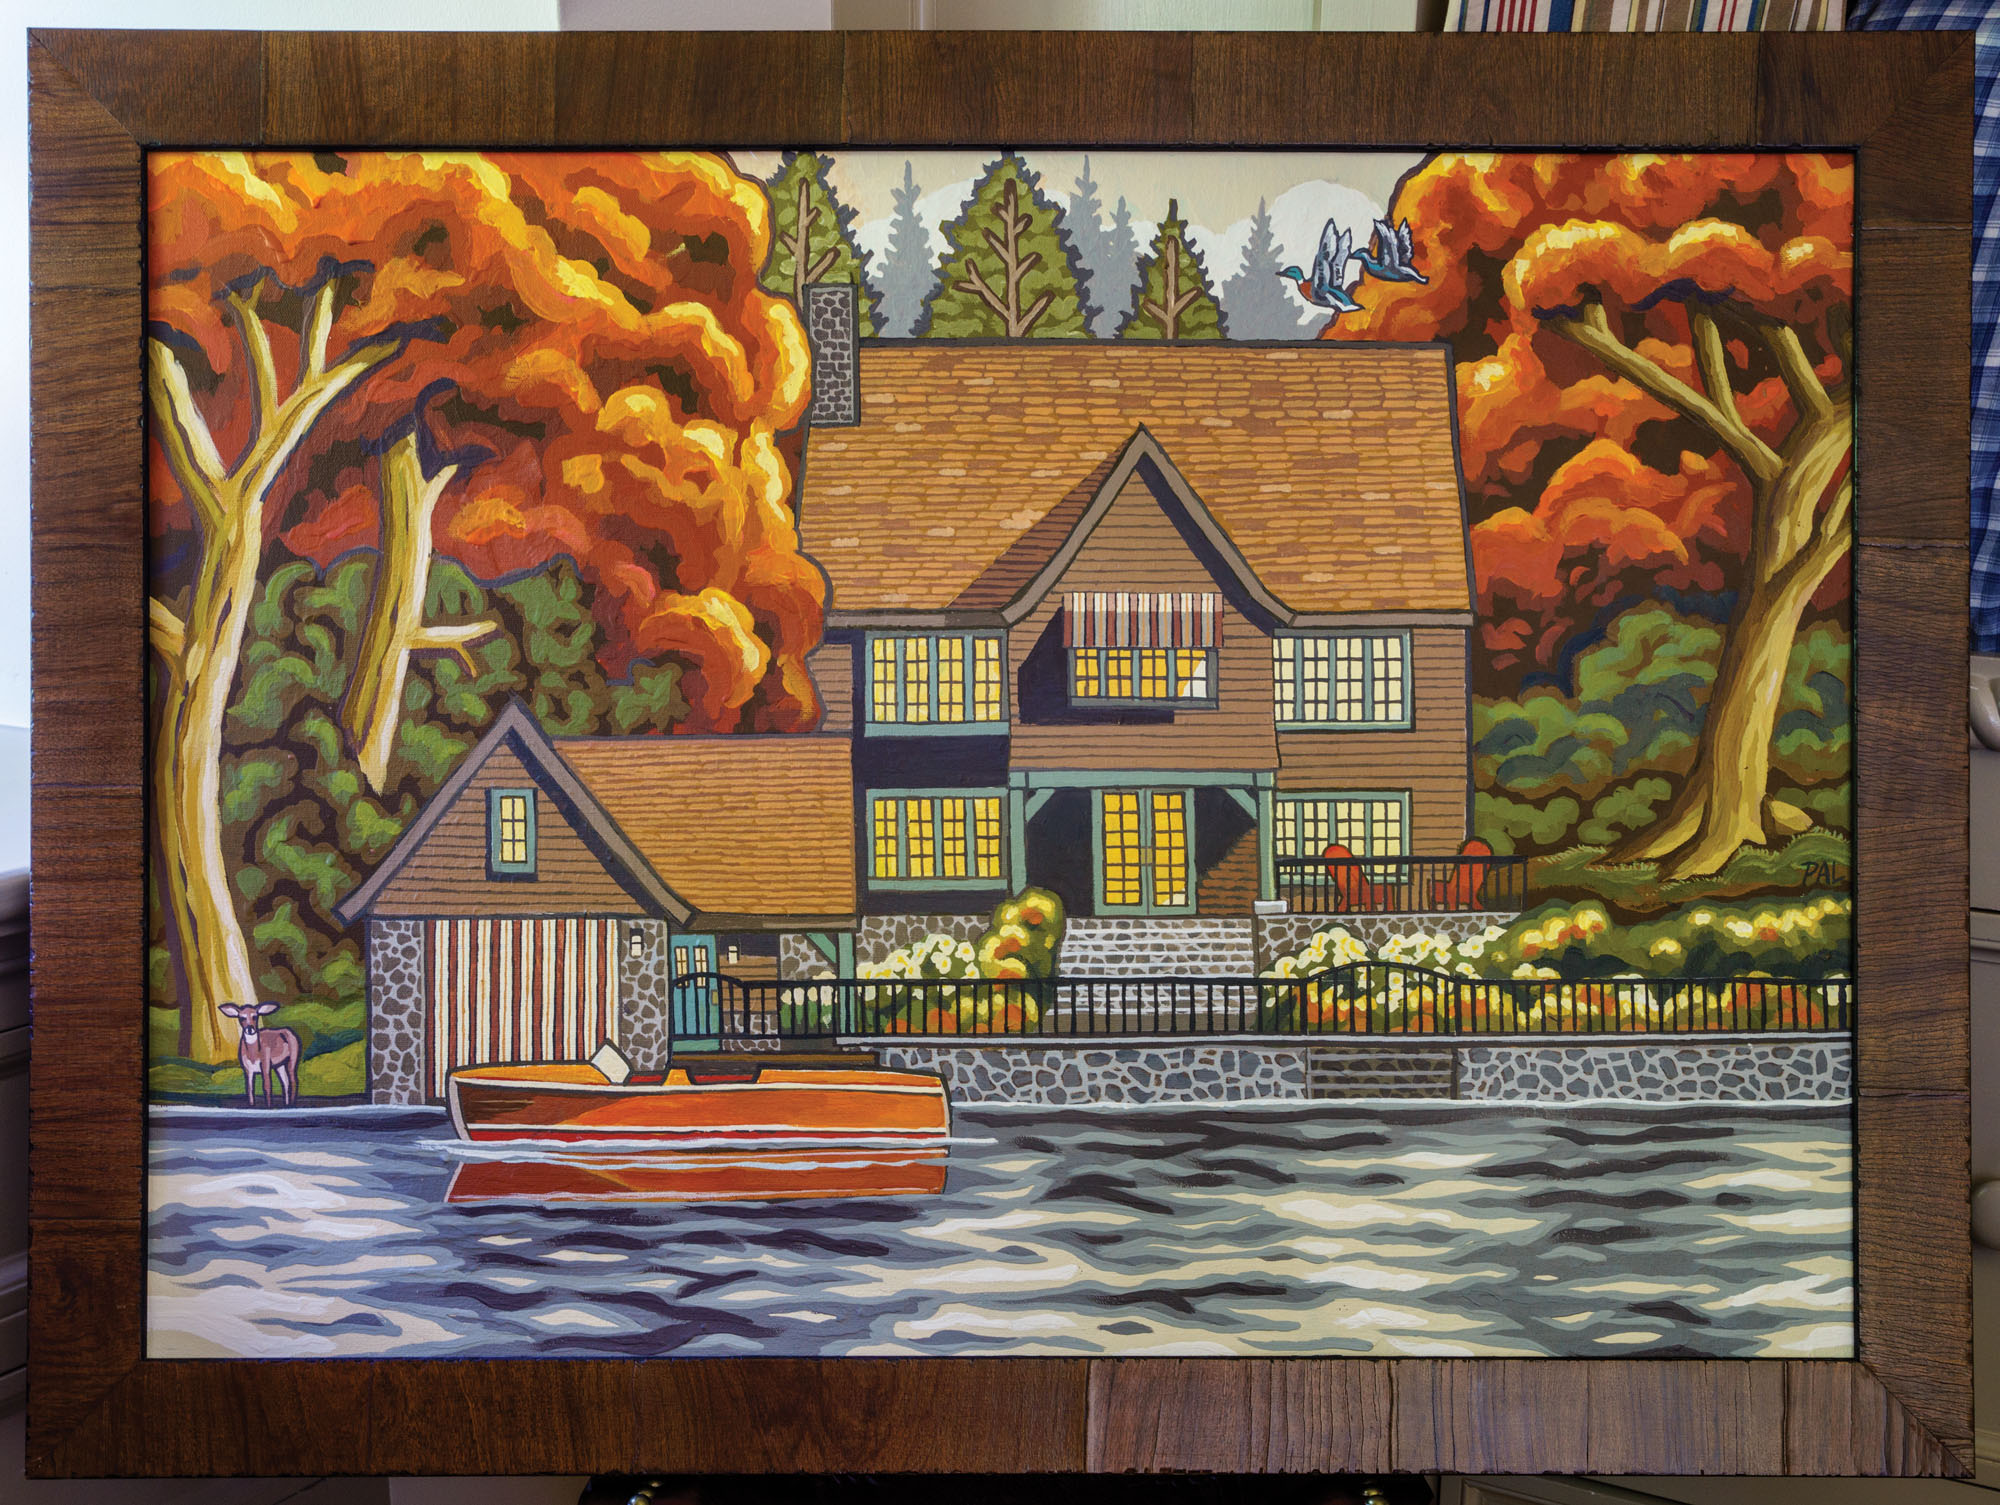 Pacific  Northwest artist Paul A. Lanquist's Lake Oswego